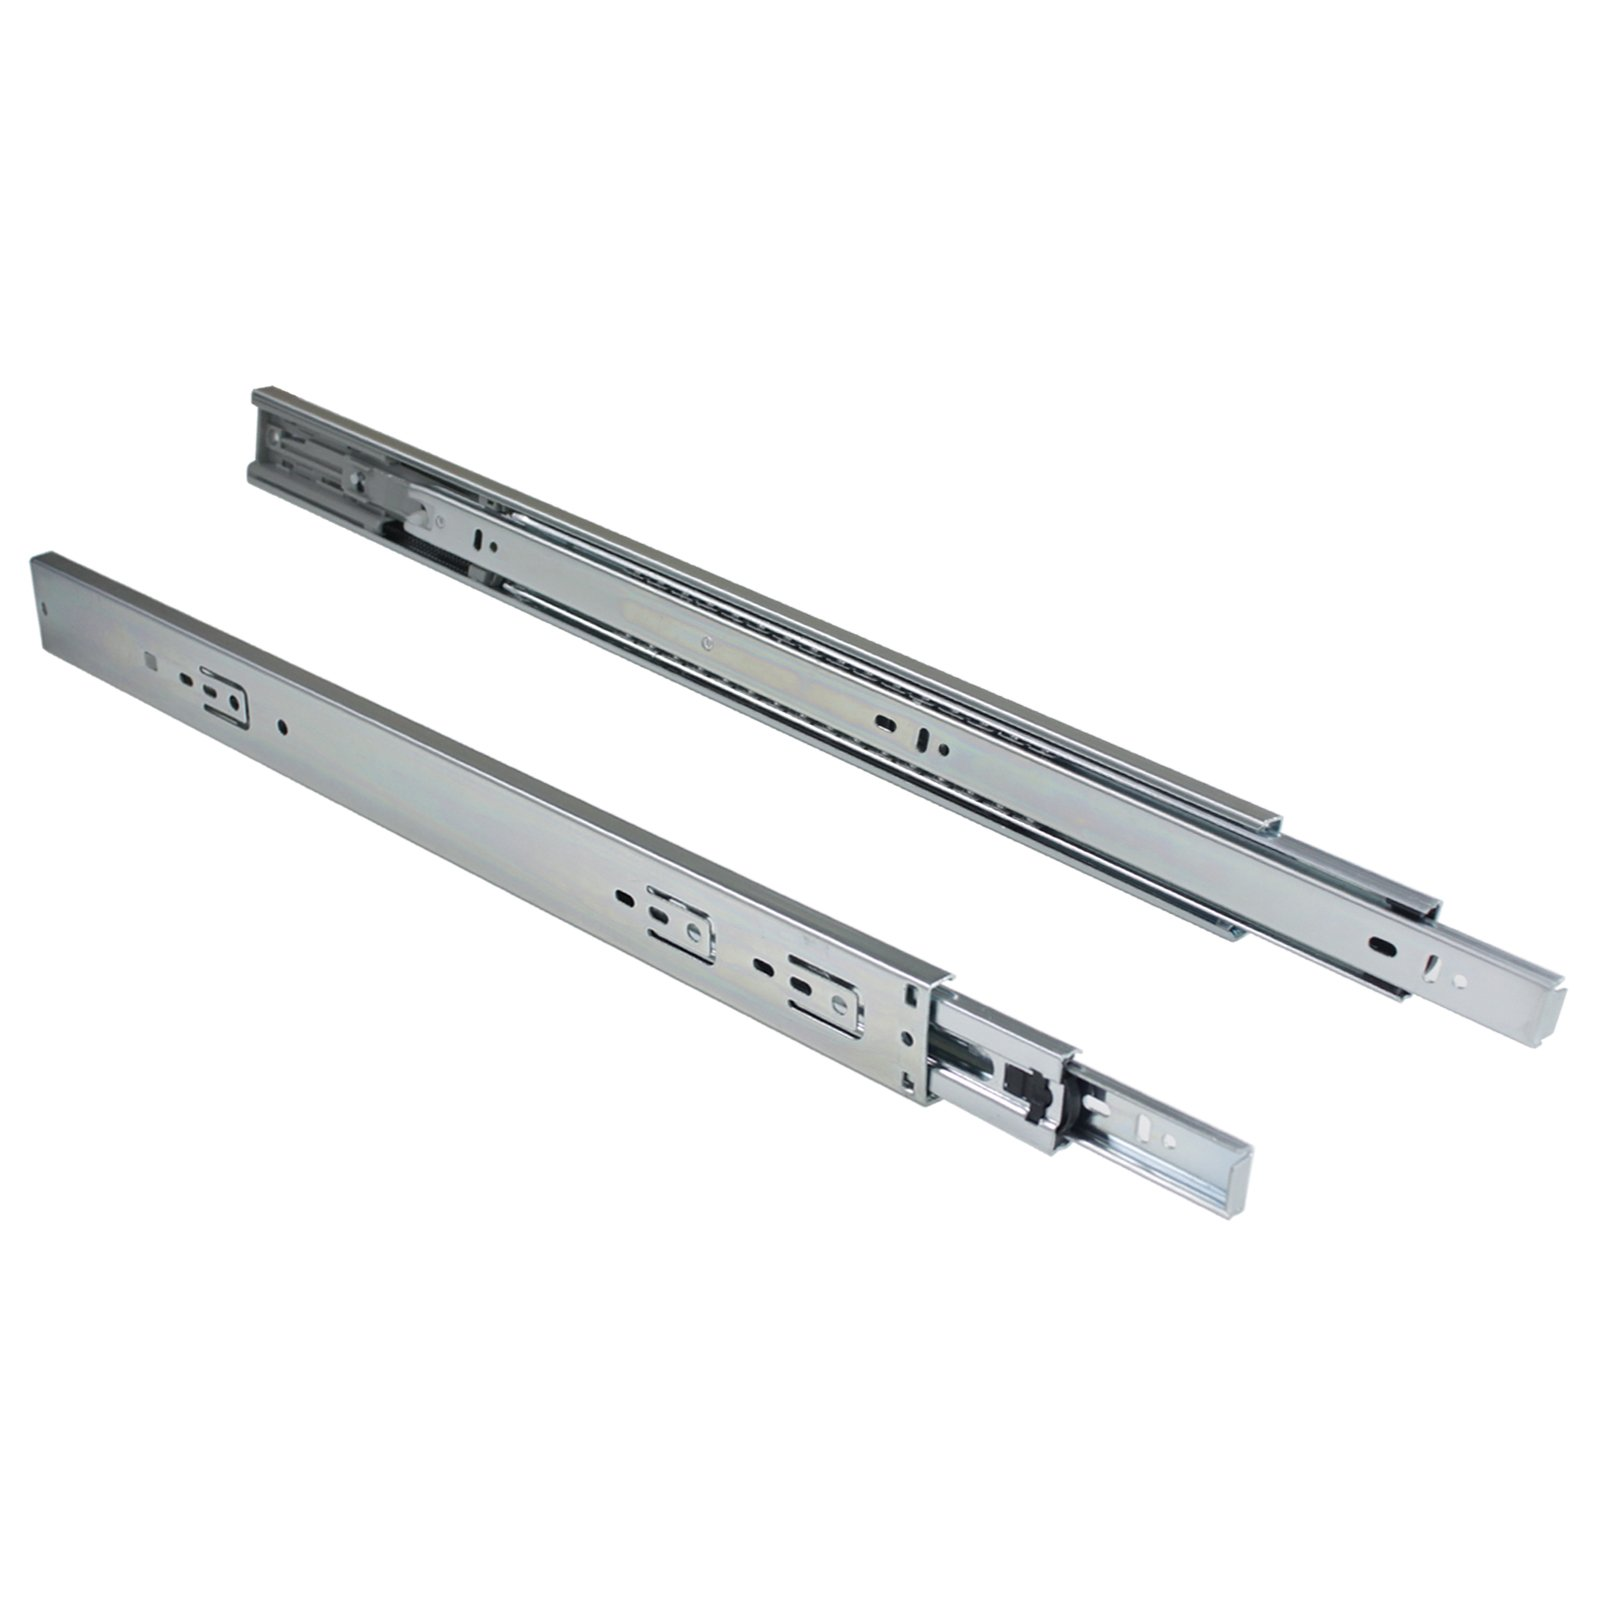 22-Inch Heavy Duty Full Extension Ball Bearing Drawer Slides Soft Close Rail Runners 6Pair(12 Pieces) by Gobrico (Image #3)